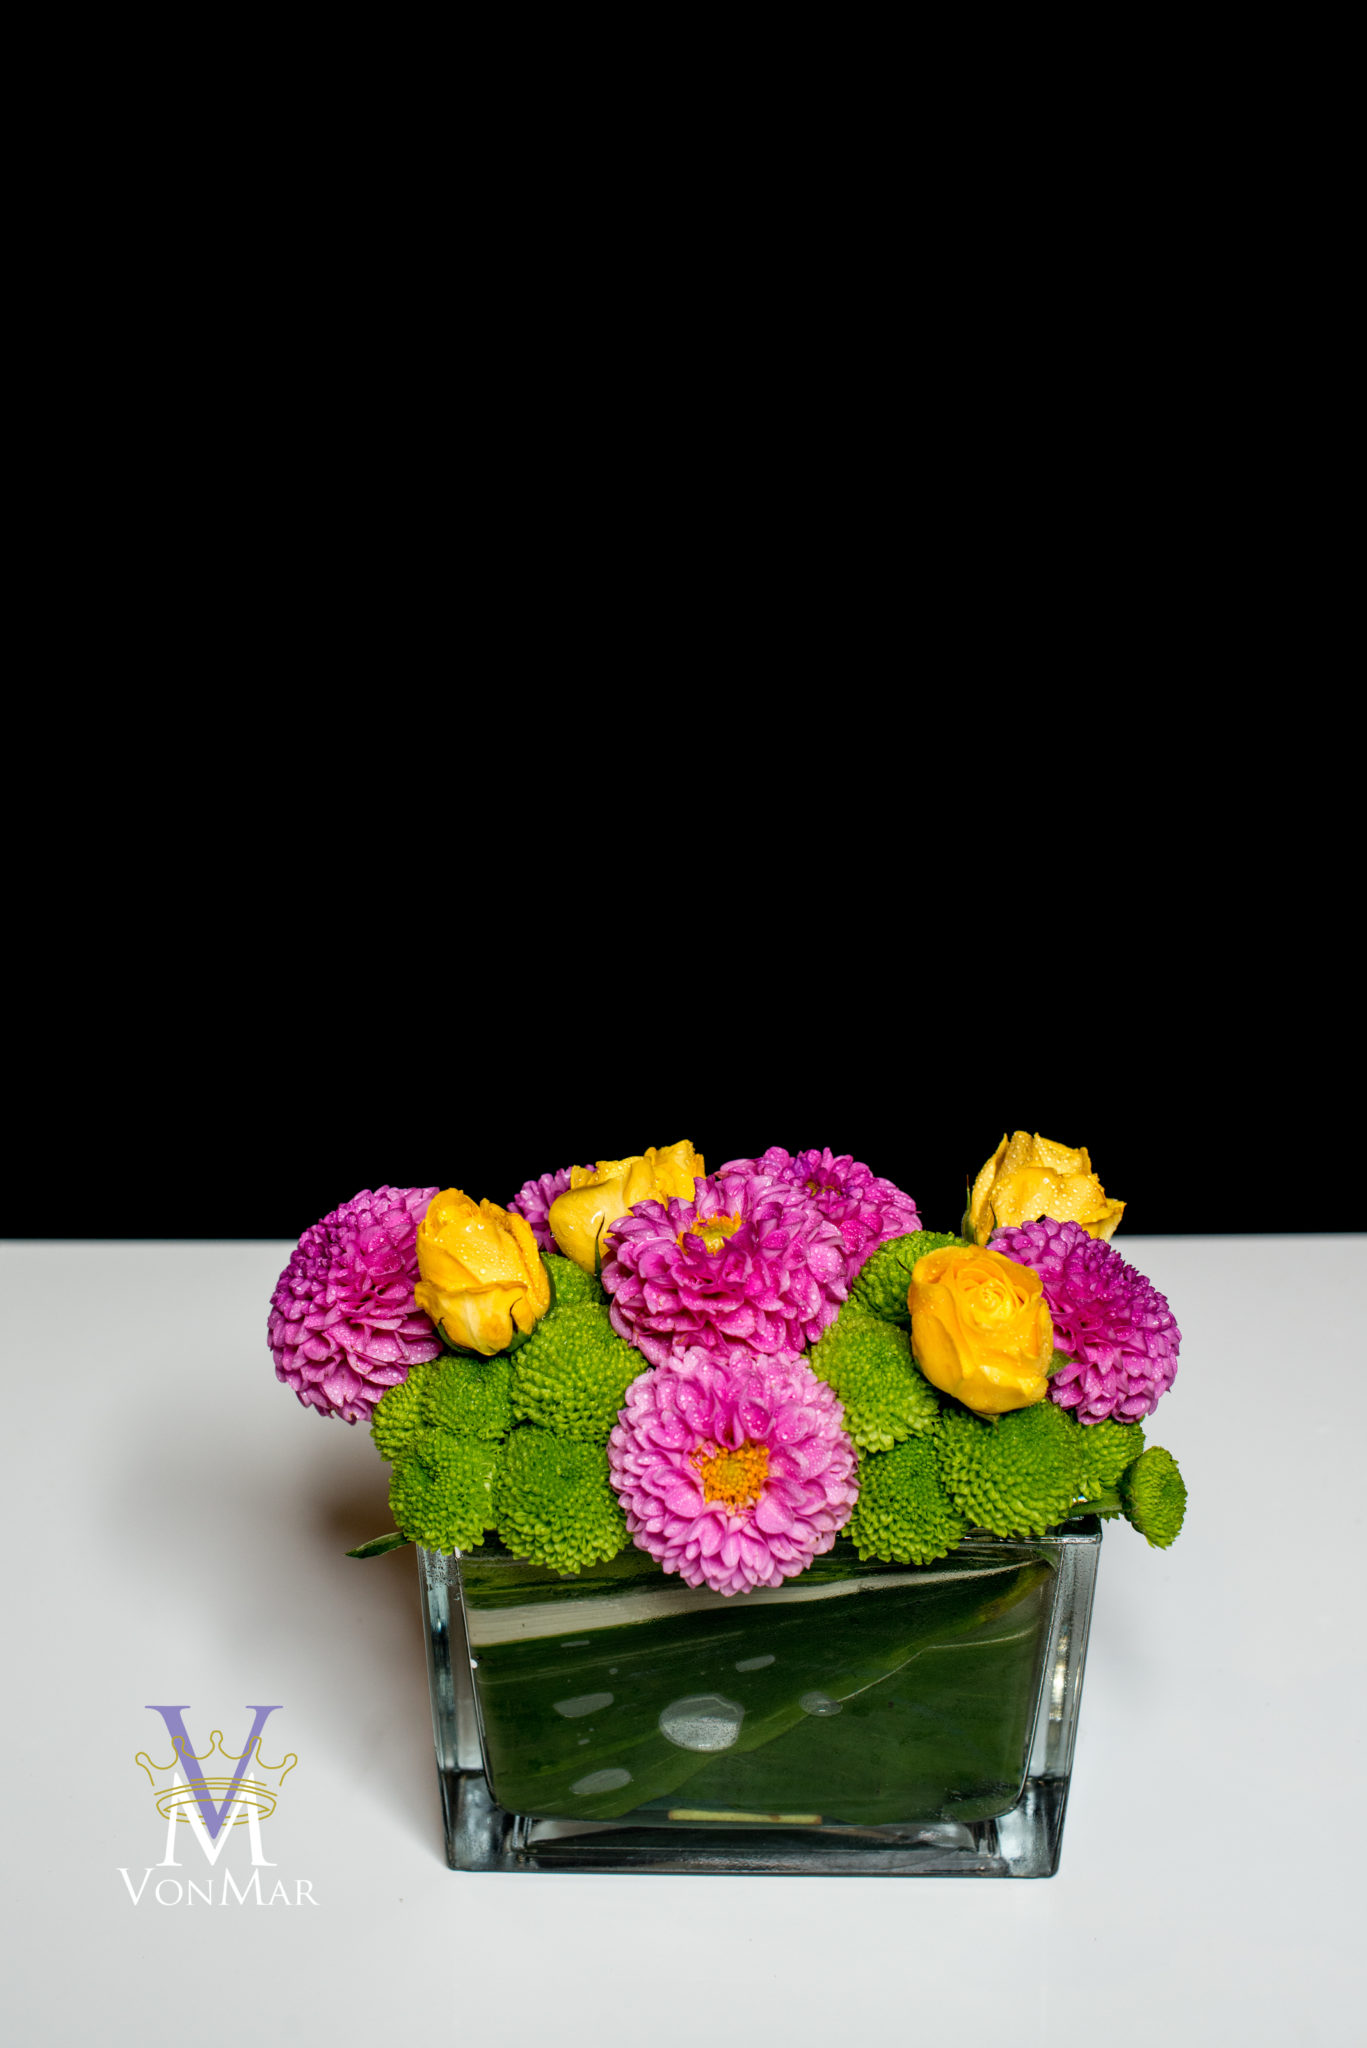 Pink Dahlia, yellow rose and button mums